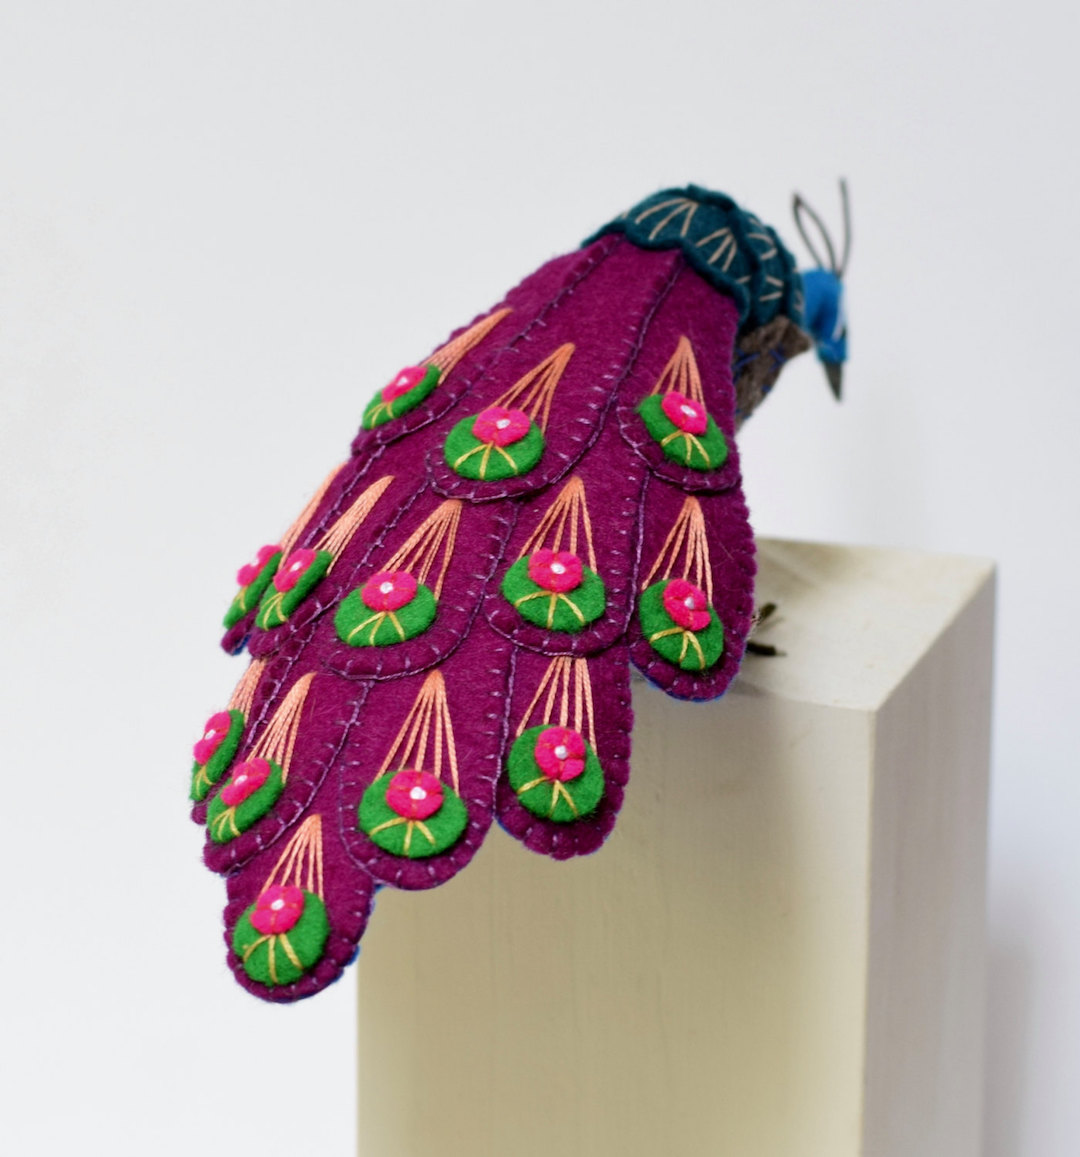 Jill Ffrench felt bird sculptures